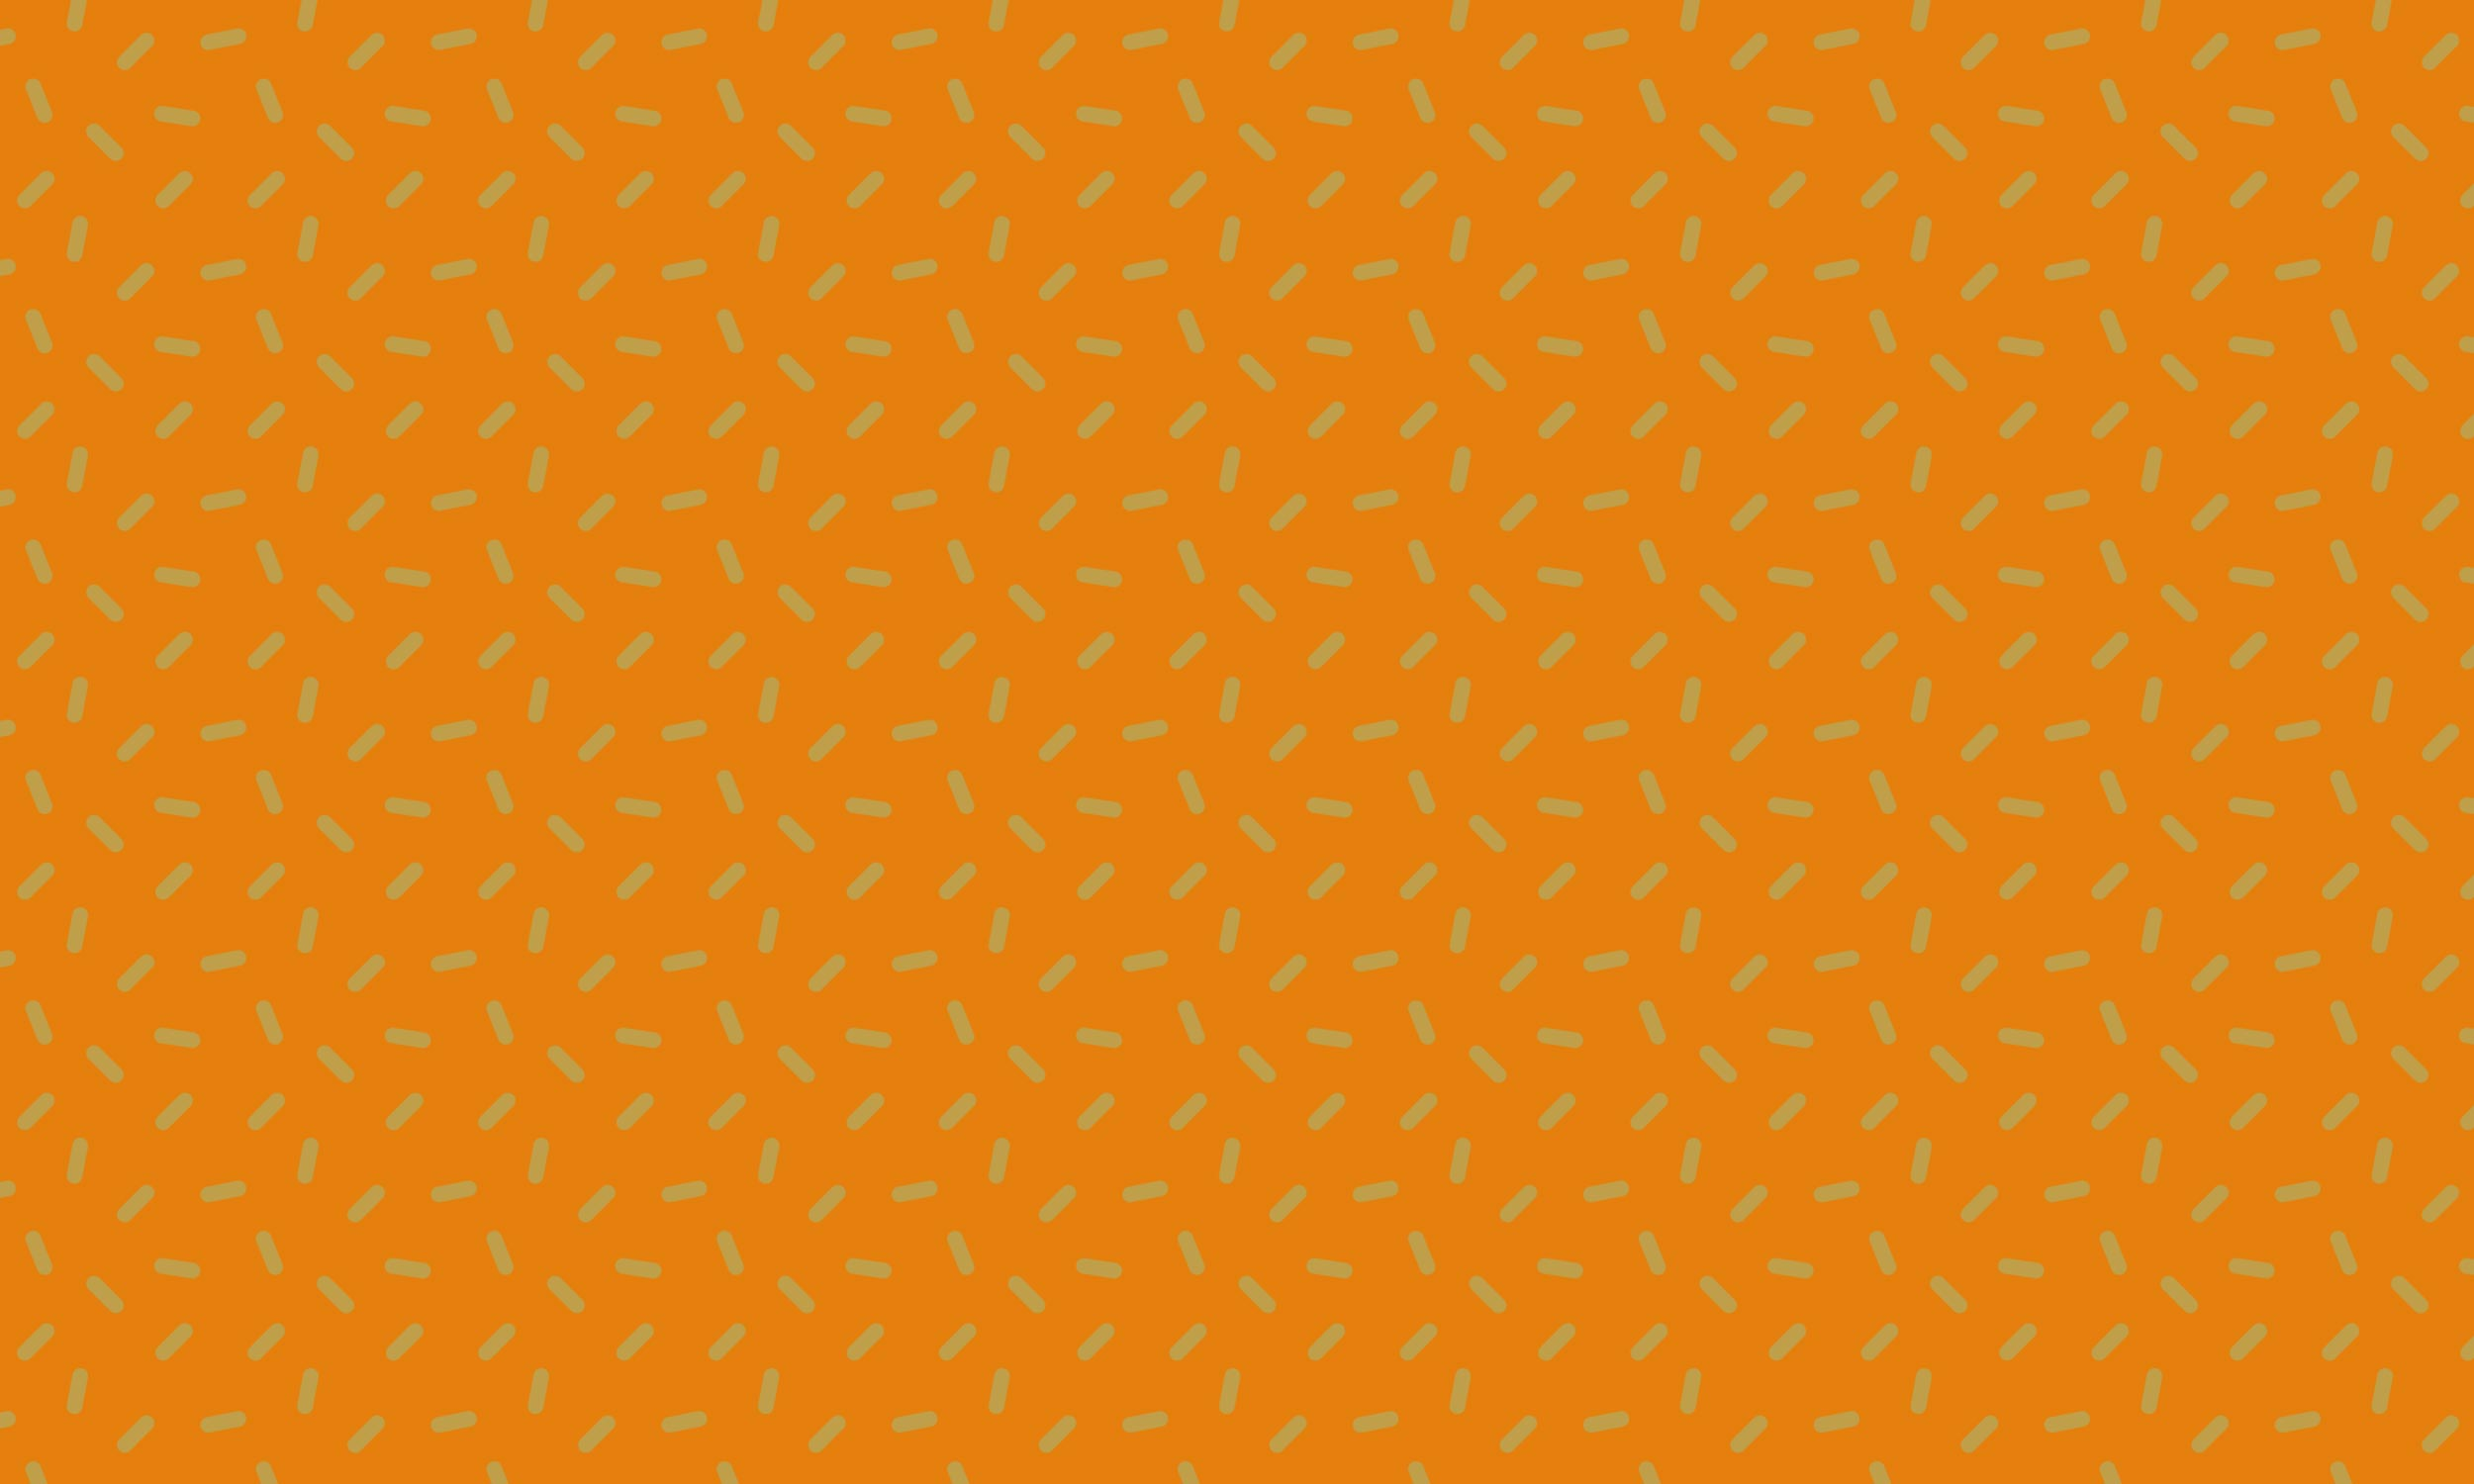 Orange one hundreds and thousands pattern